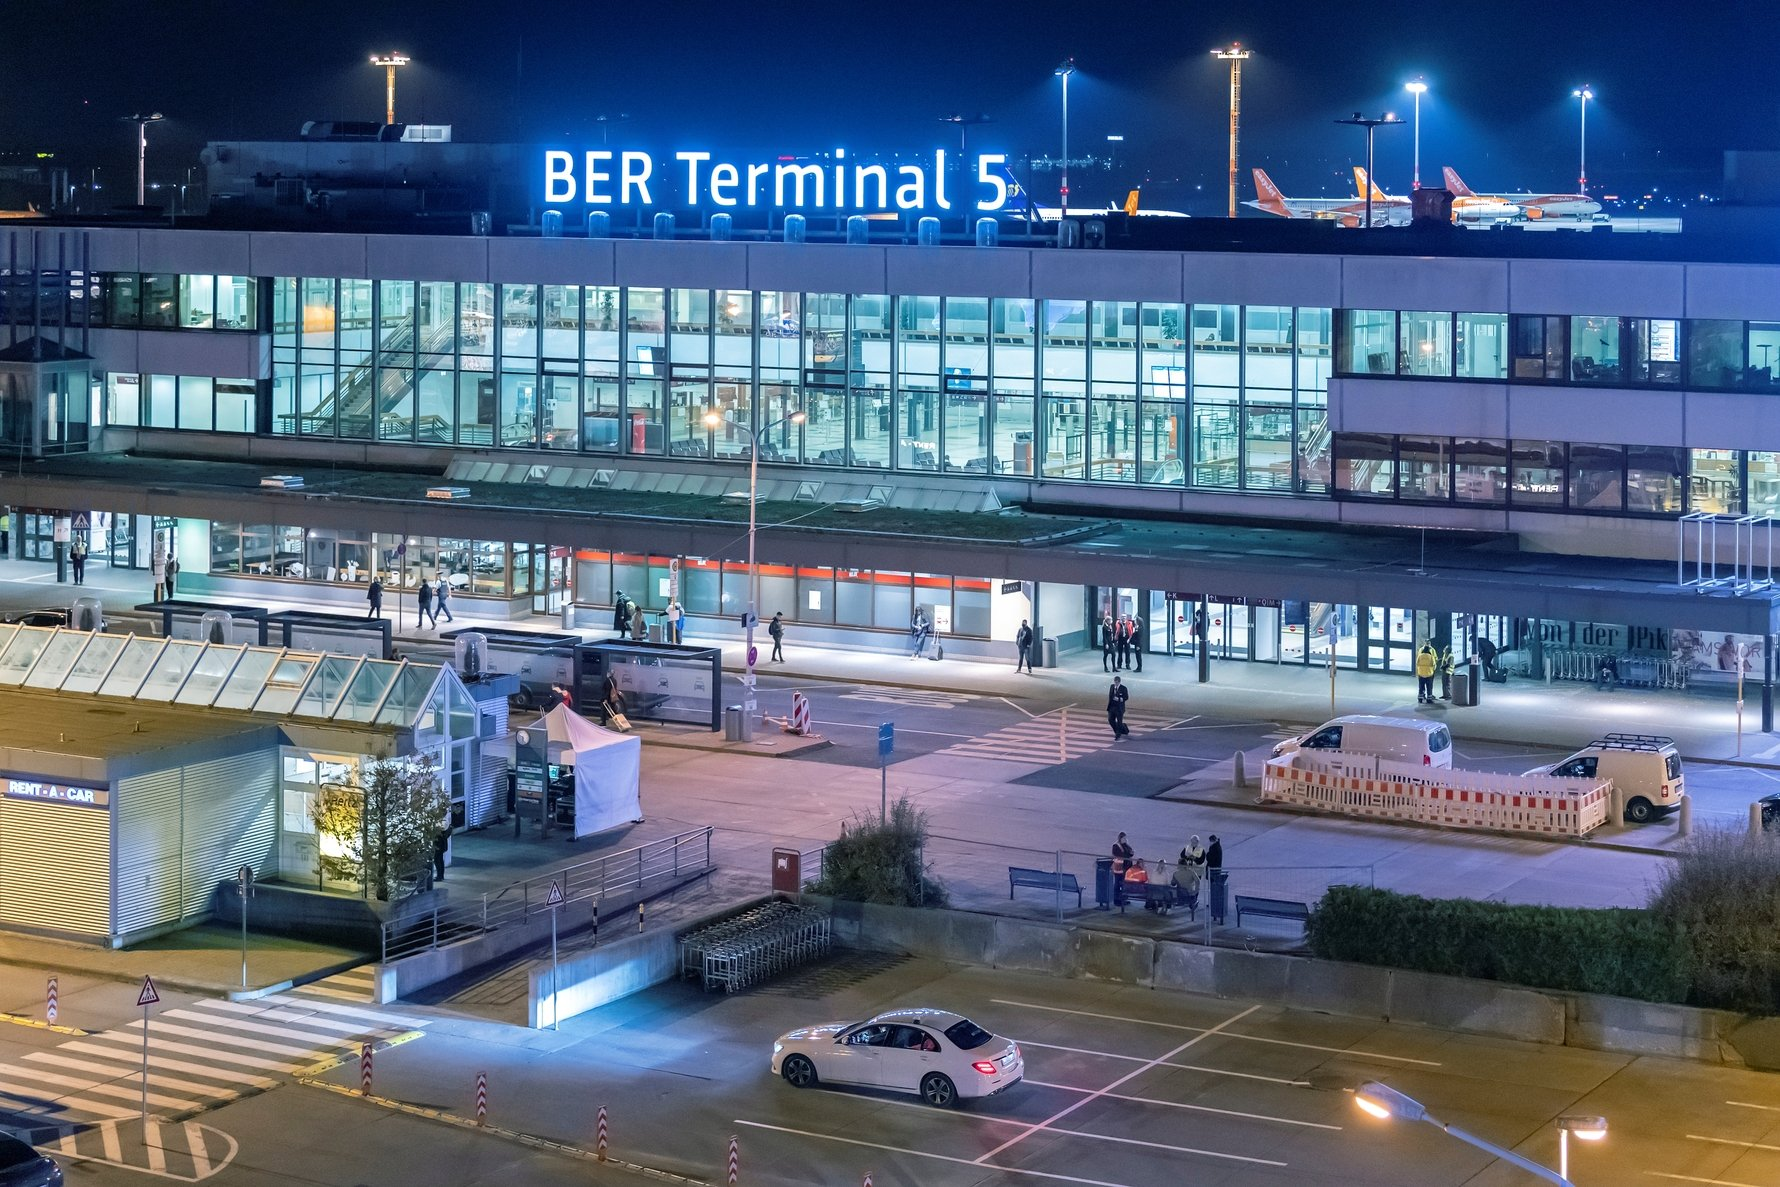 But Berlin finally did overcome it, and Berlin Brandenburg Airport is now open. Named after former West Berlin mayor and Nobel Peace Prize laureate Willy Brandt, the airport is to act as a hub for Lufthansa and EasyJet